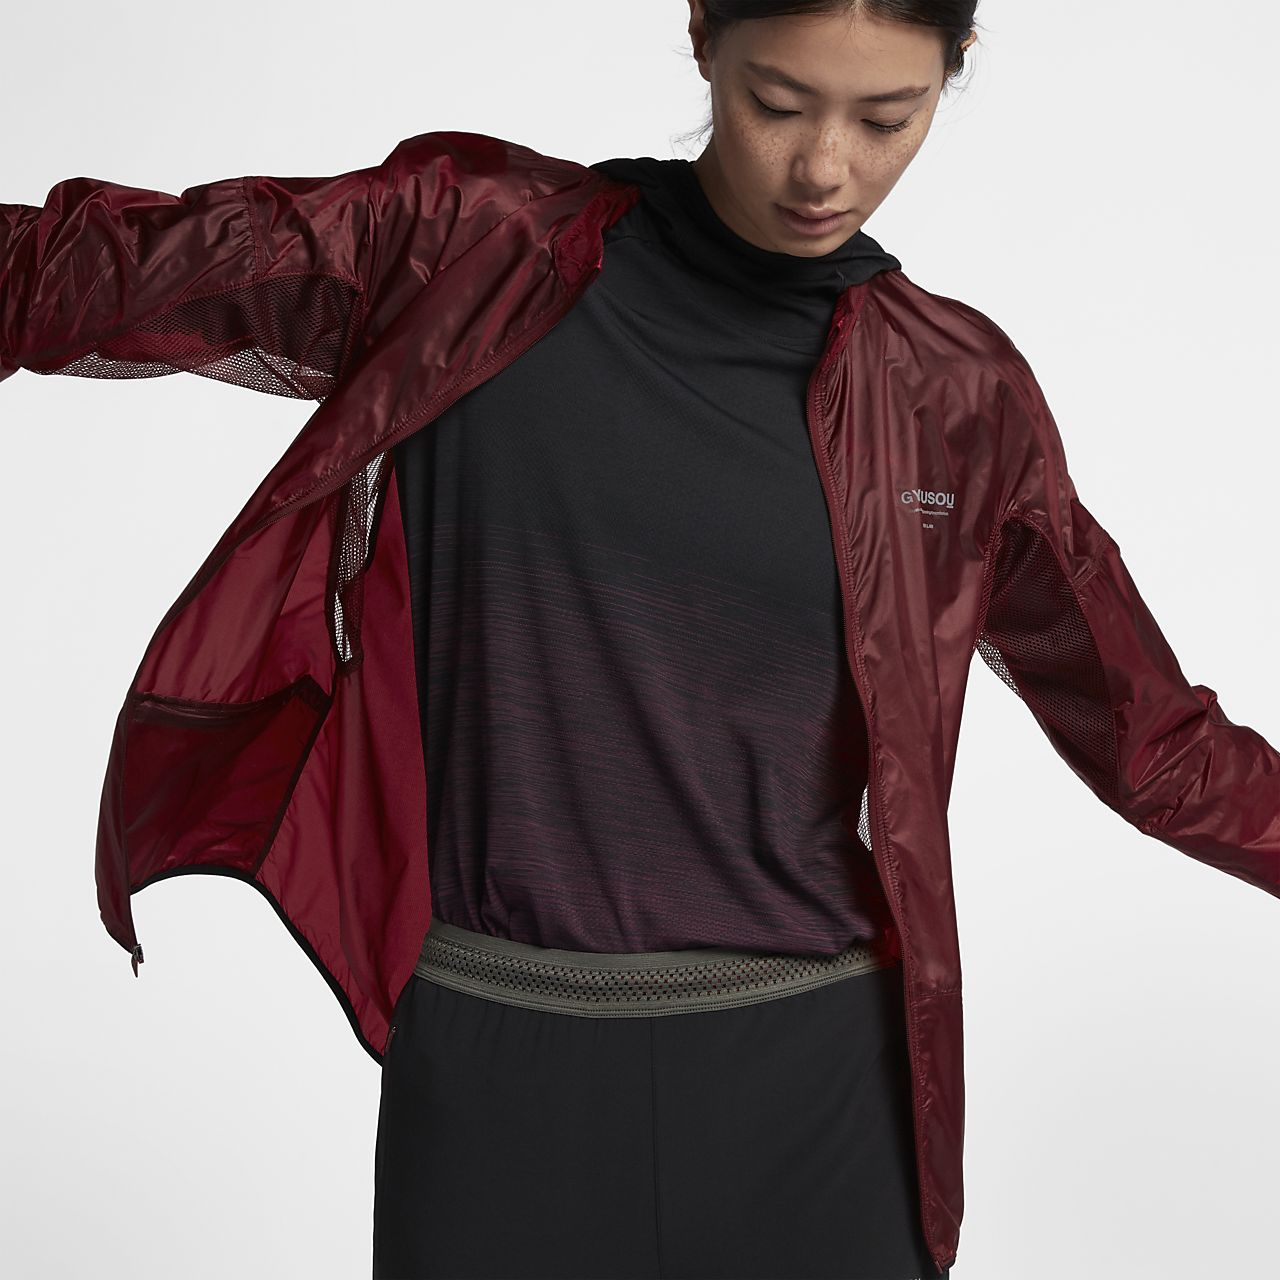 NikeLab Gyakusou Packable 女子夹克